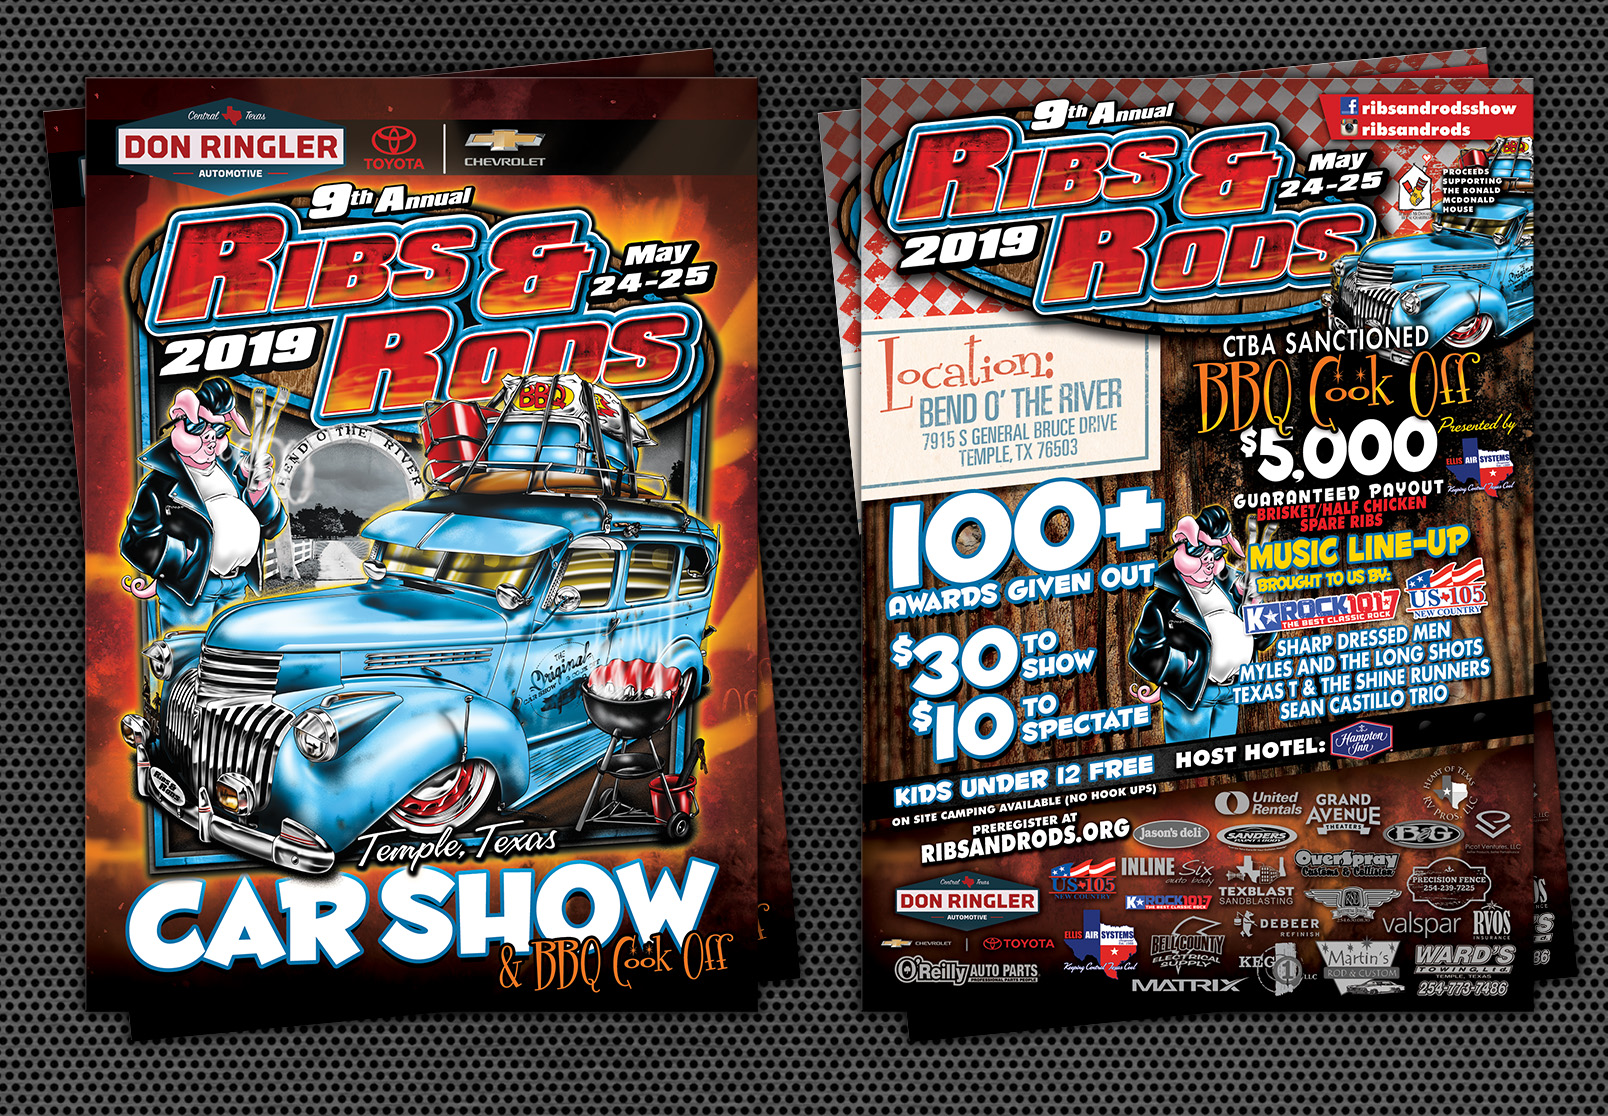 4.19-RibsandRods19-5x7-Flyer-PROOF.JPG